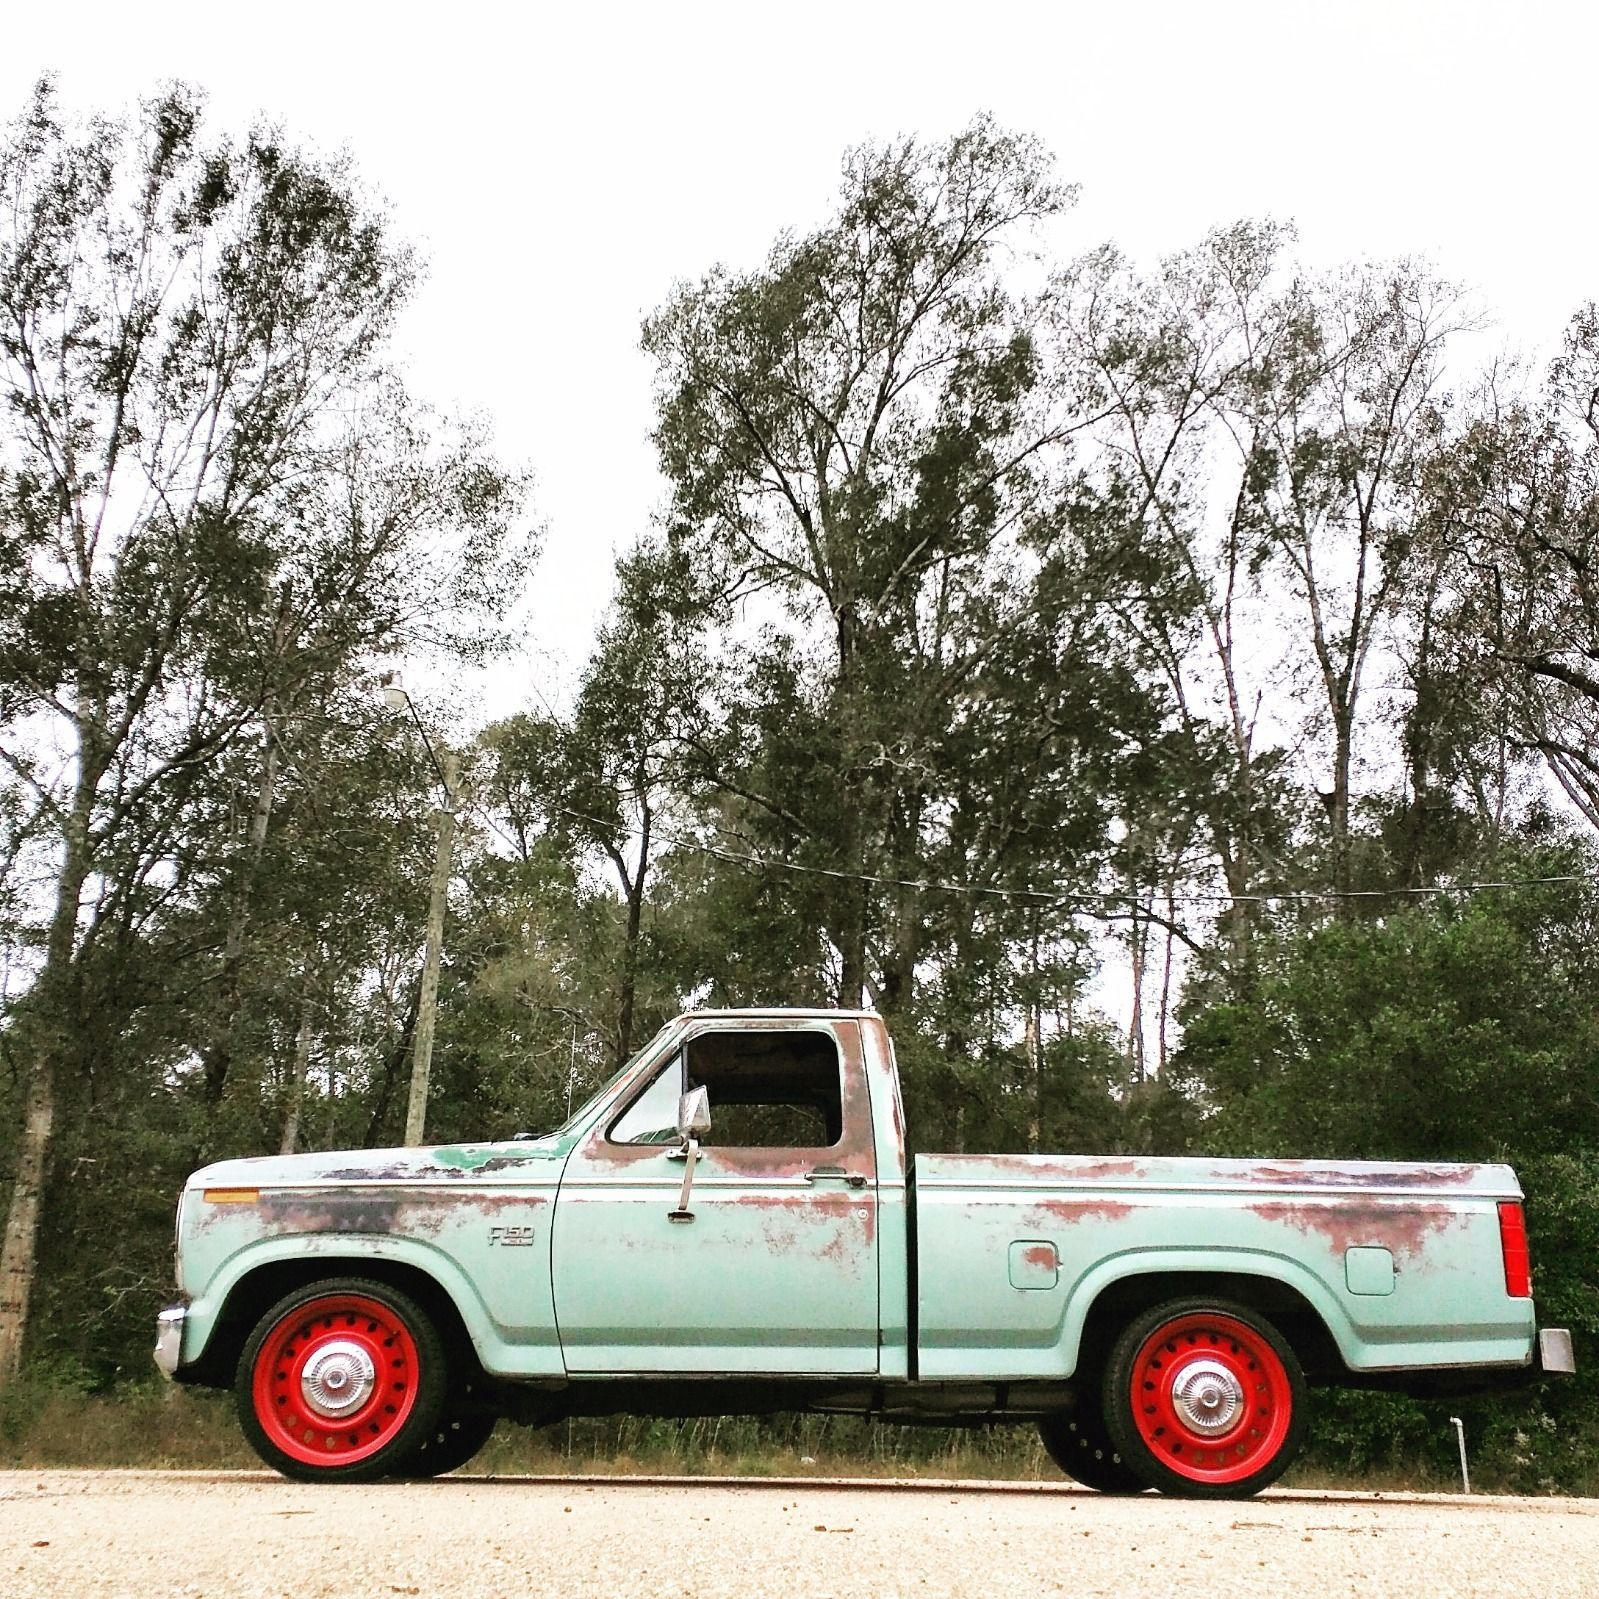 82 Ford F 150 Ford F150 Ford Ford Motor